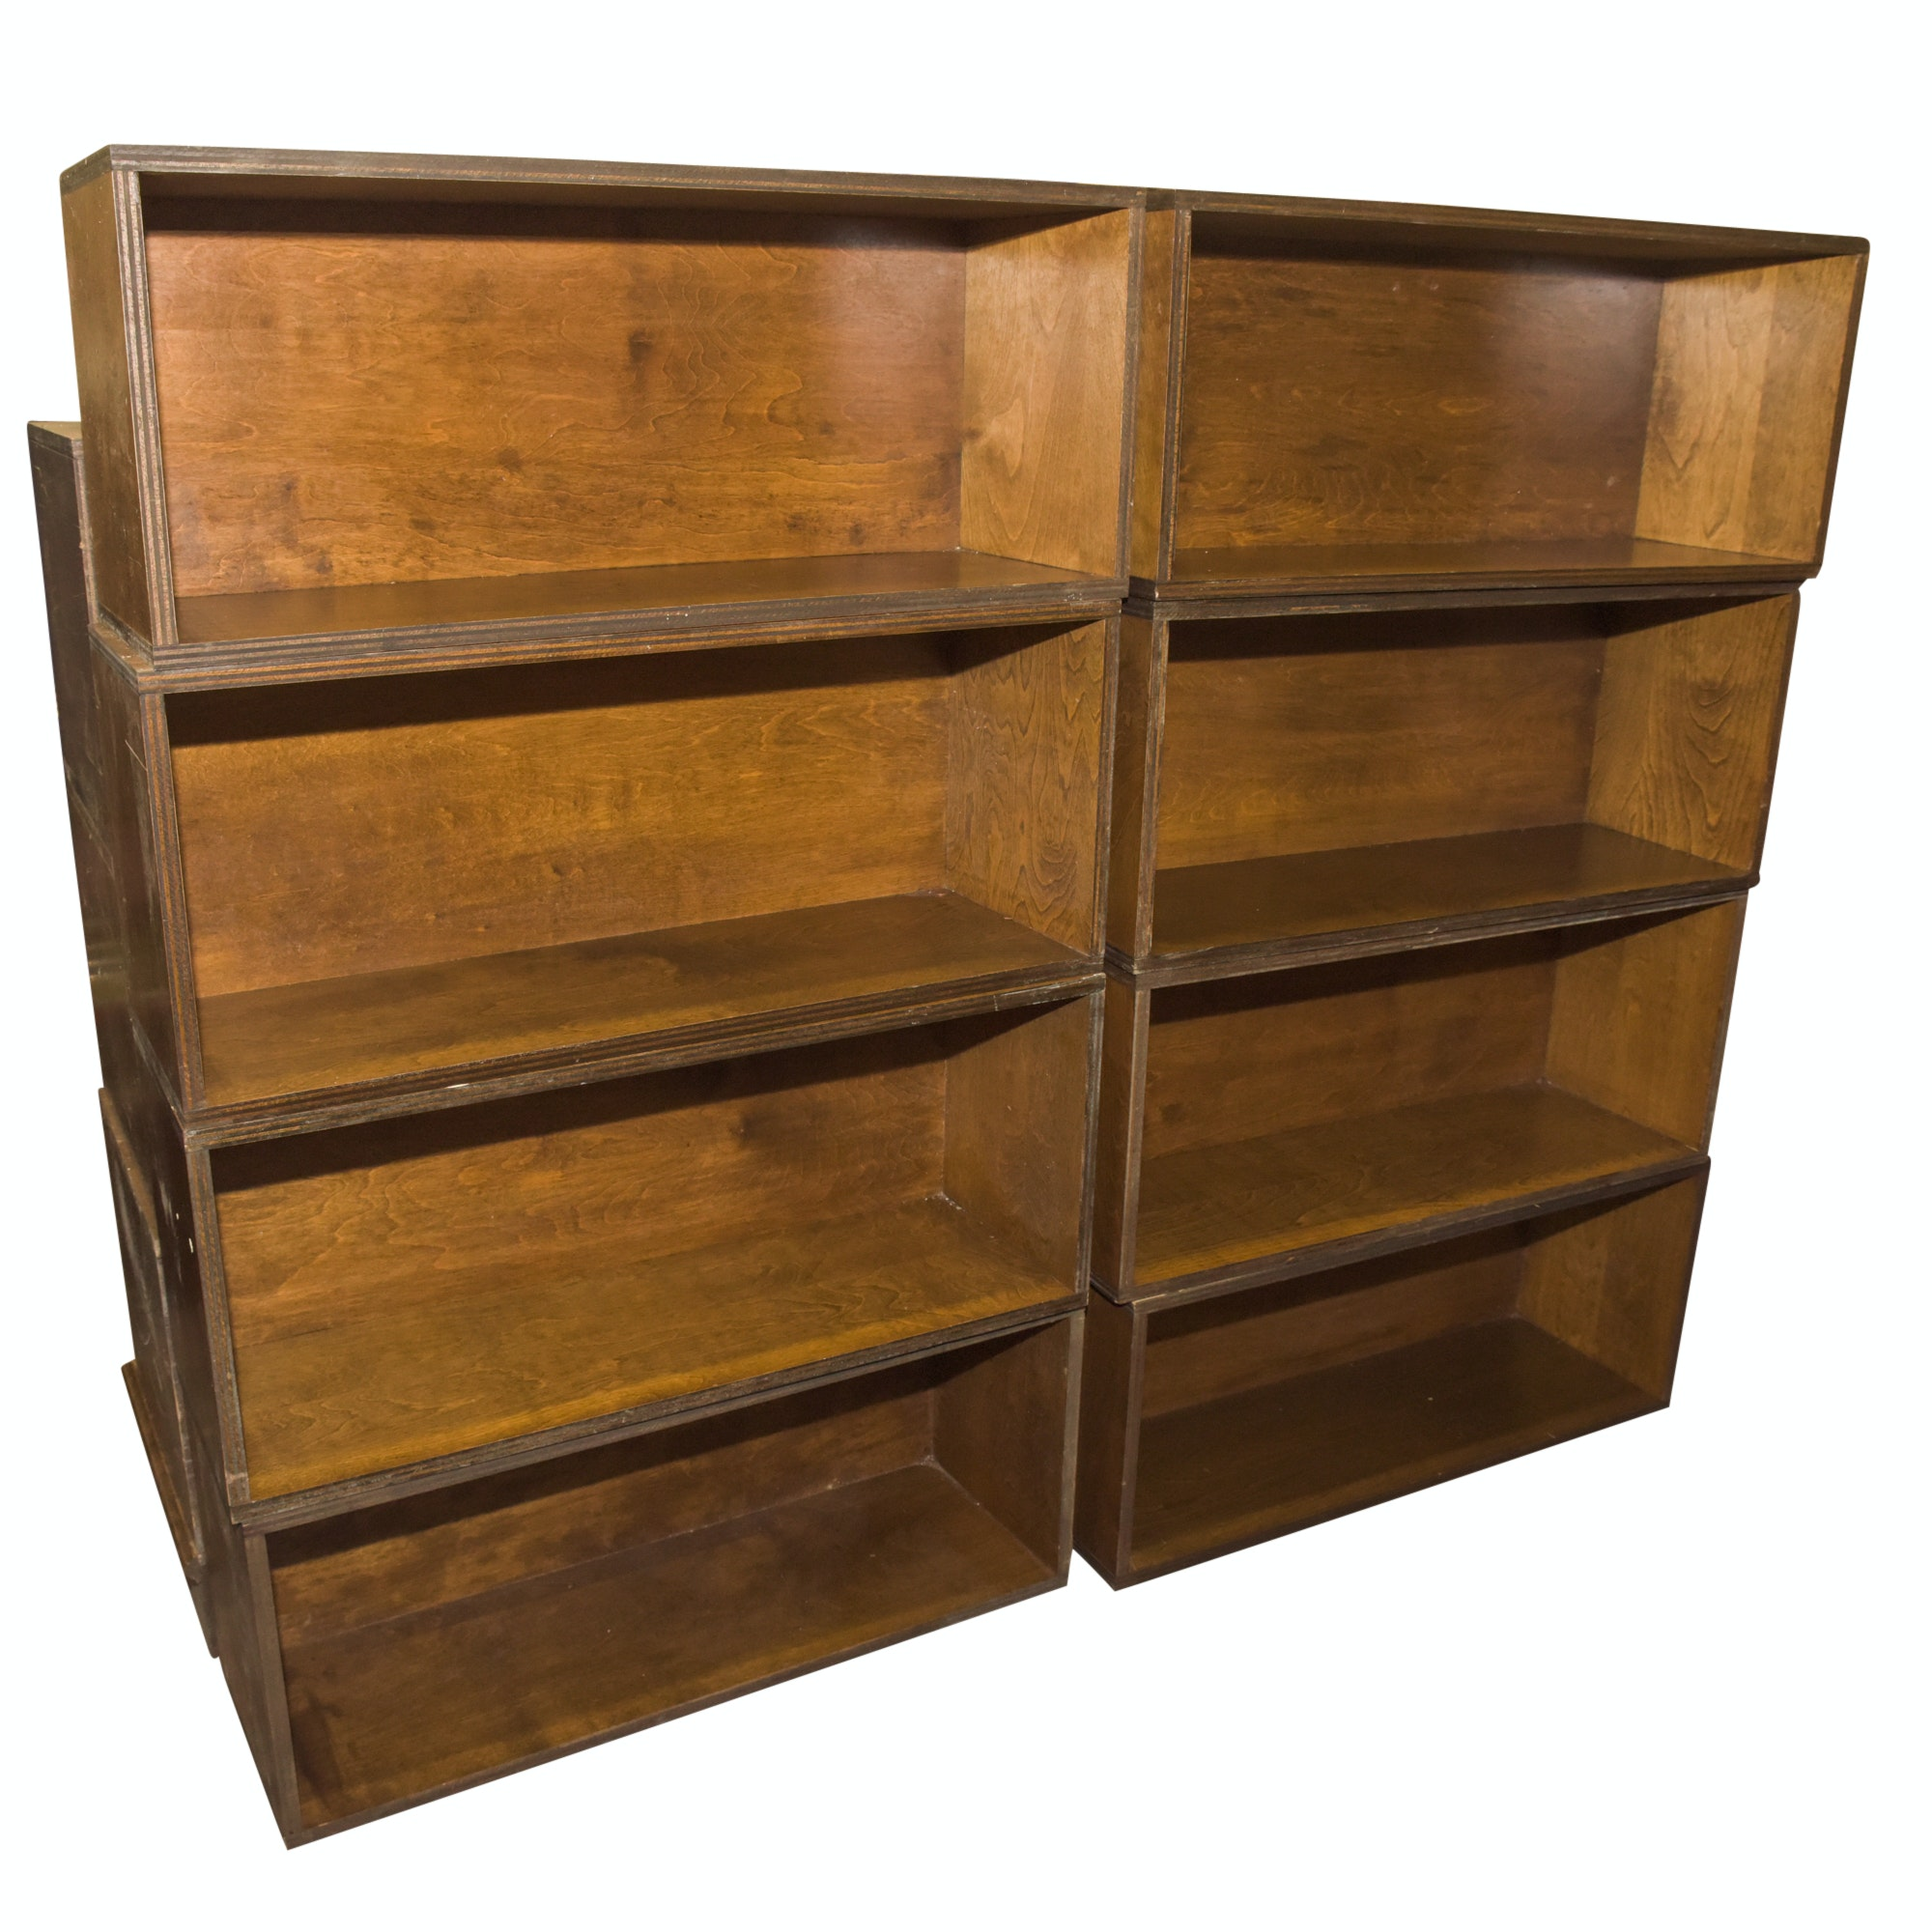 Modular Wooden Bookcases